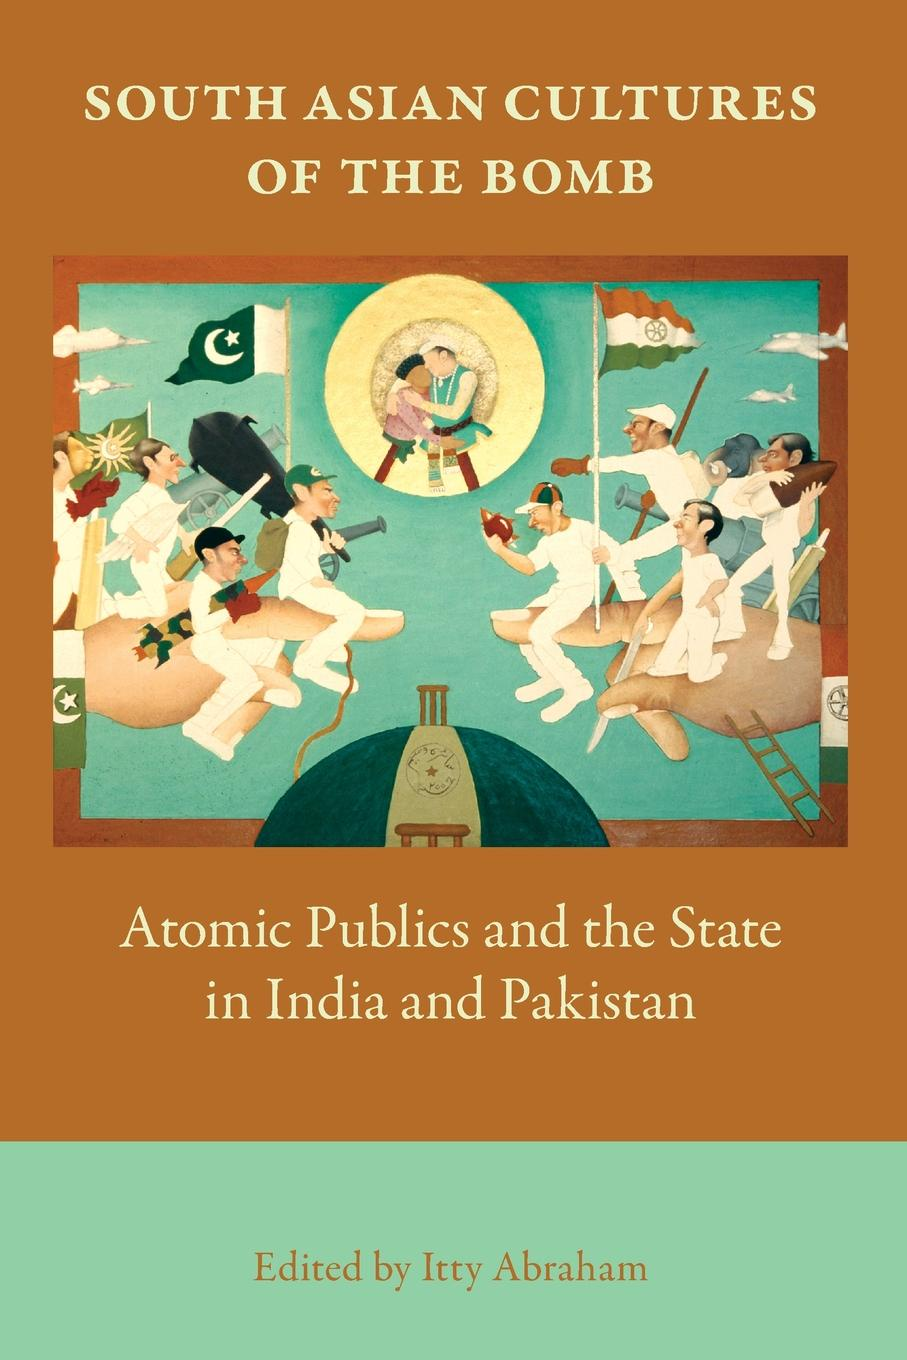 лучшая цена South Asian Cultures of the Bomb. Atomic Publics and the State in India and Pakistan